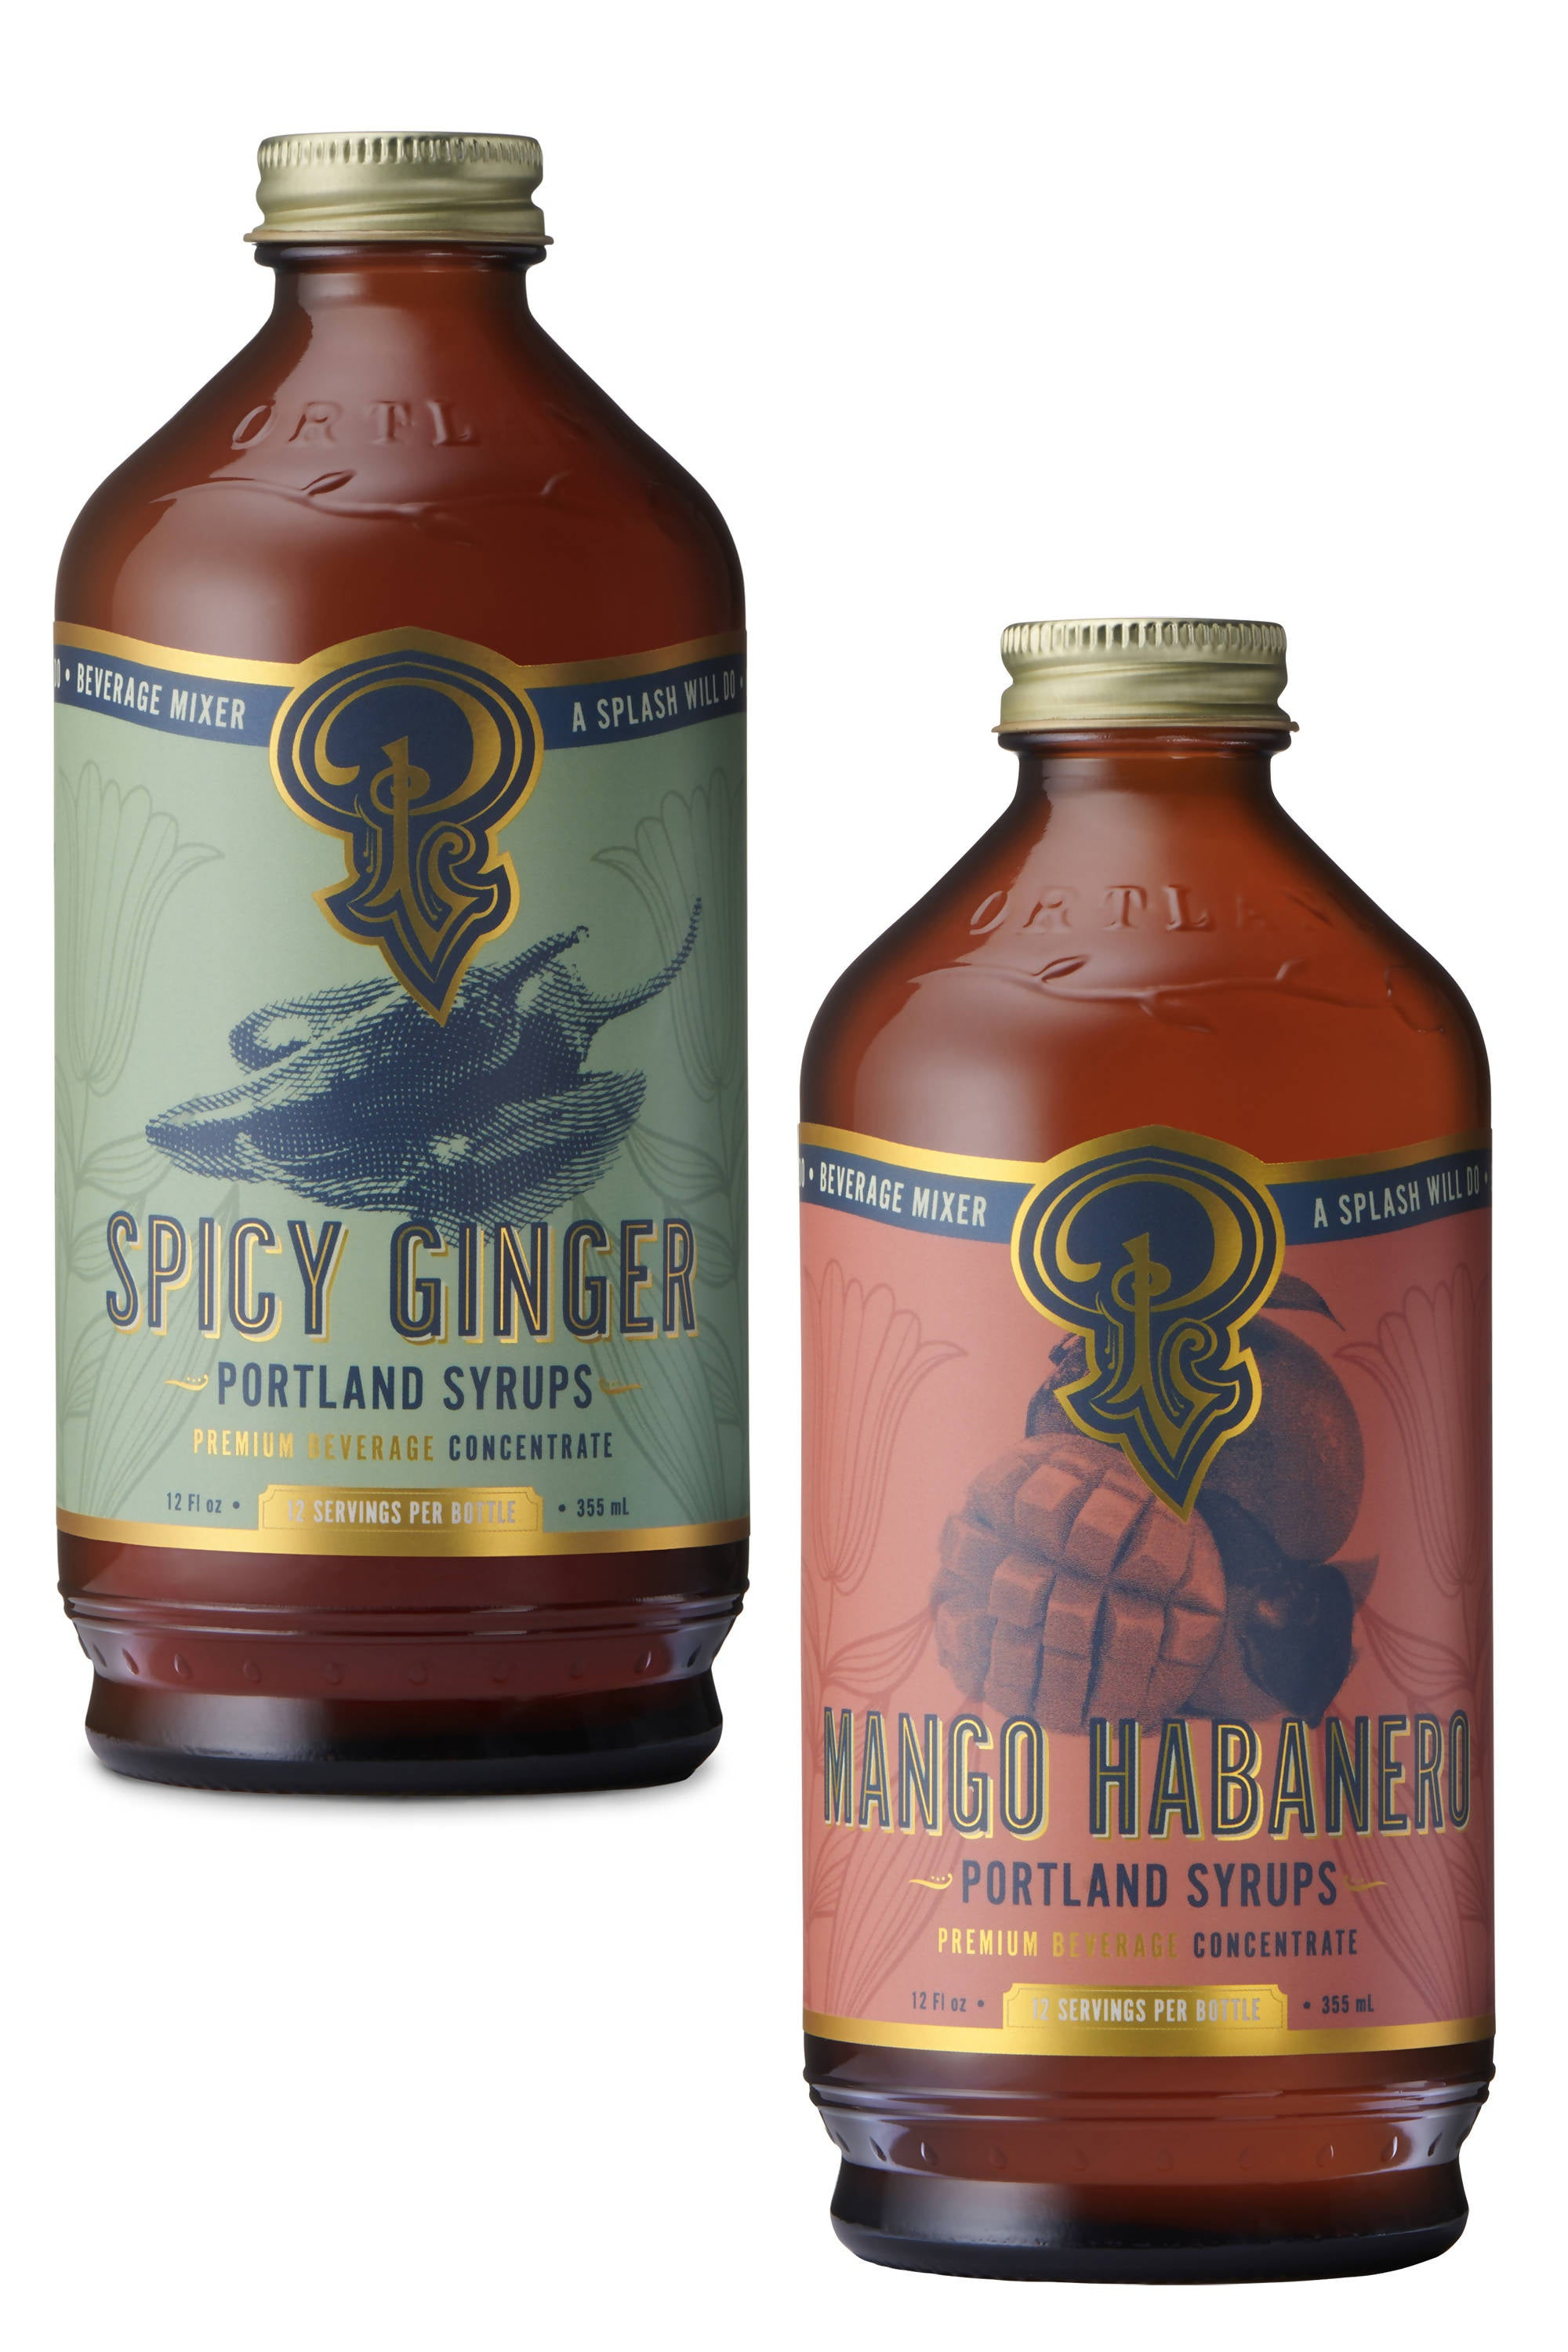 Spicy Ginger and Mango Habanero Syrups